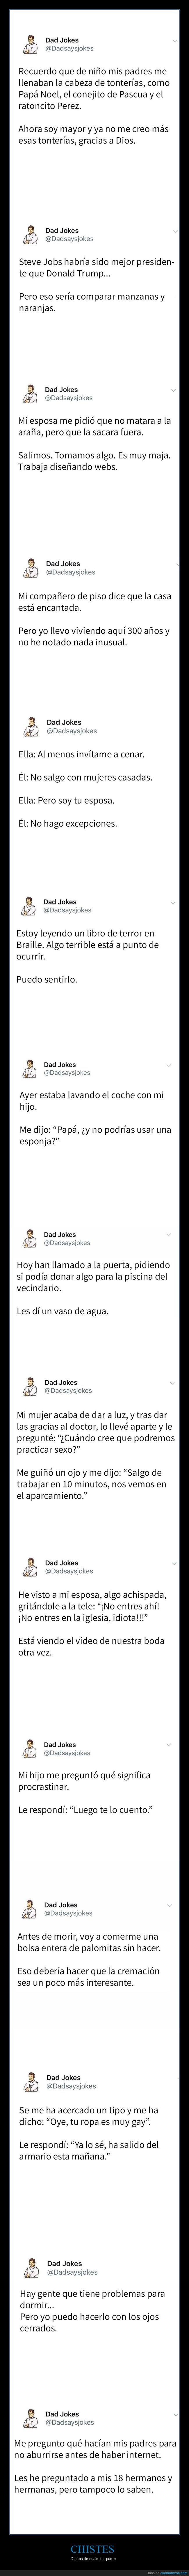 chistes,padres